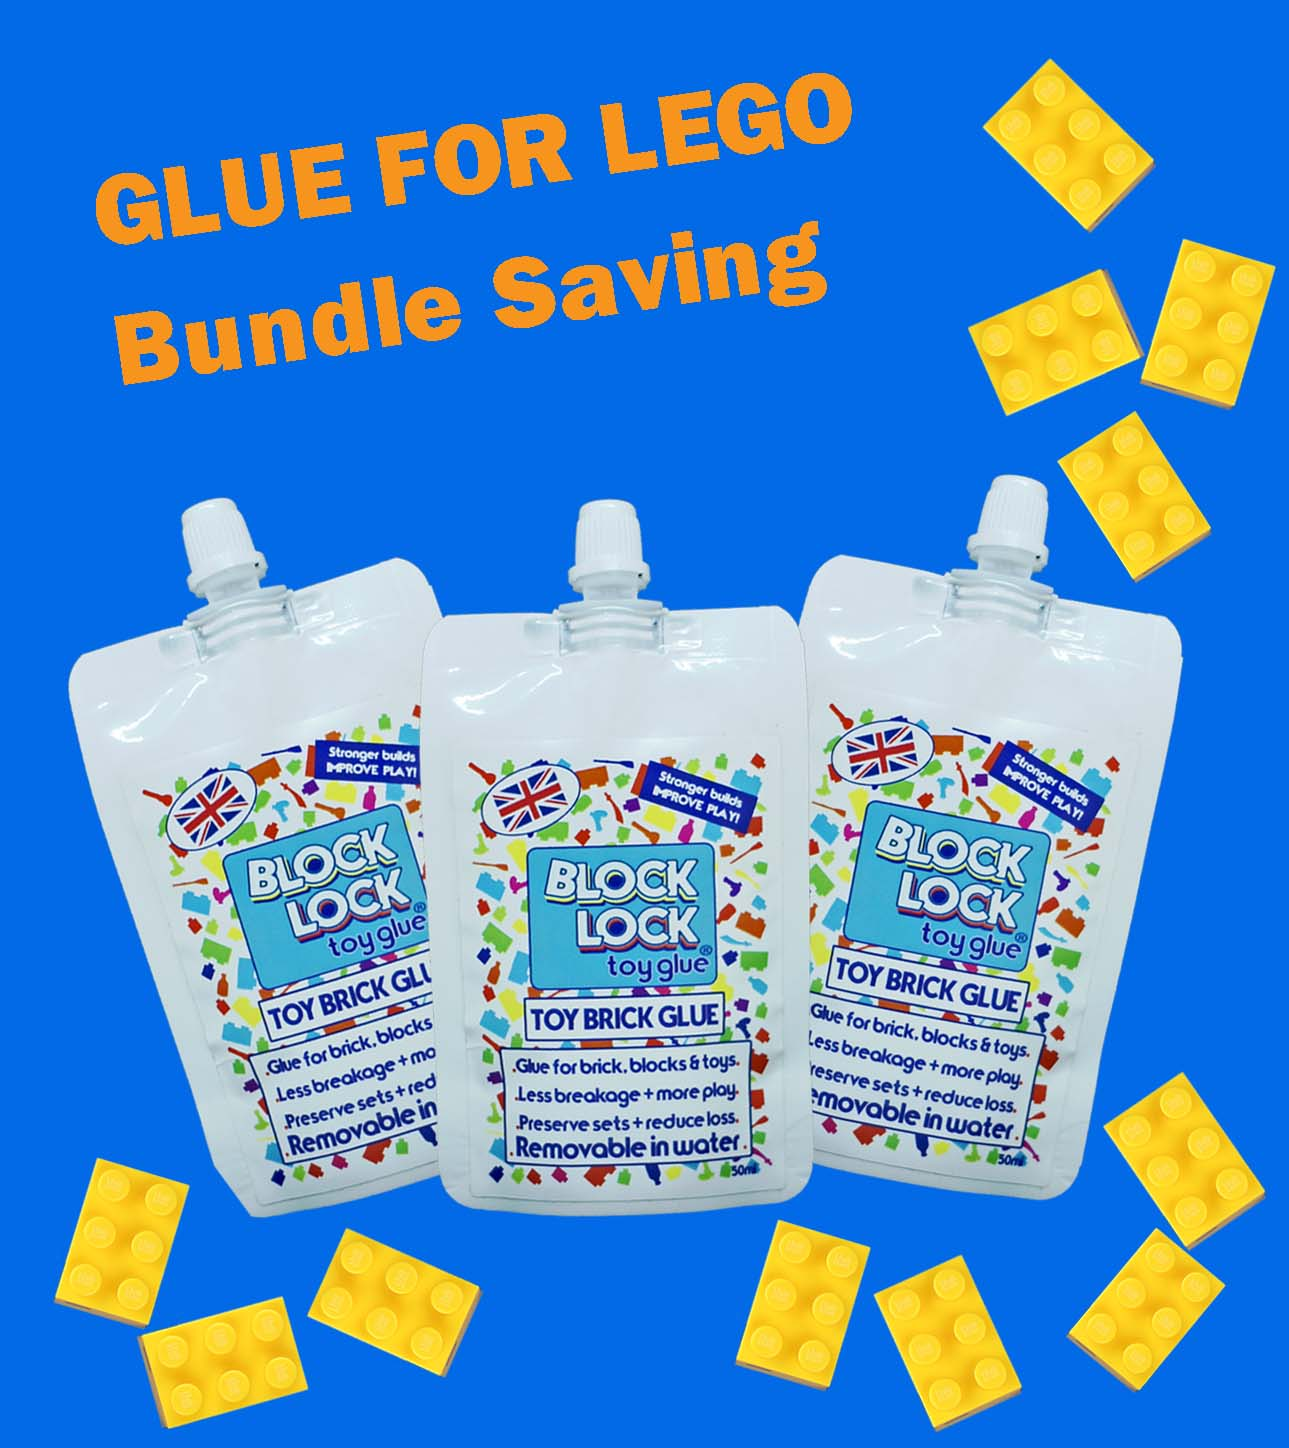 GLUE bundle 3 x 50ml pouch for TOY BRICKS  such as LEGO, Megabloks, Nanoblocks, Oxford and more